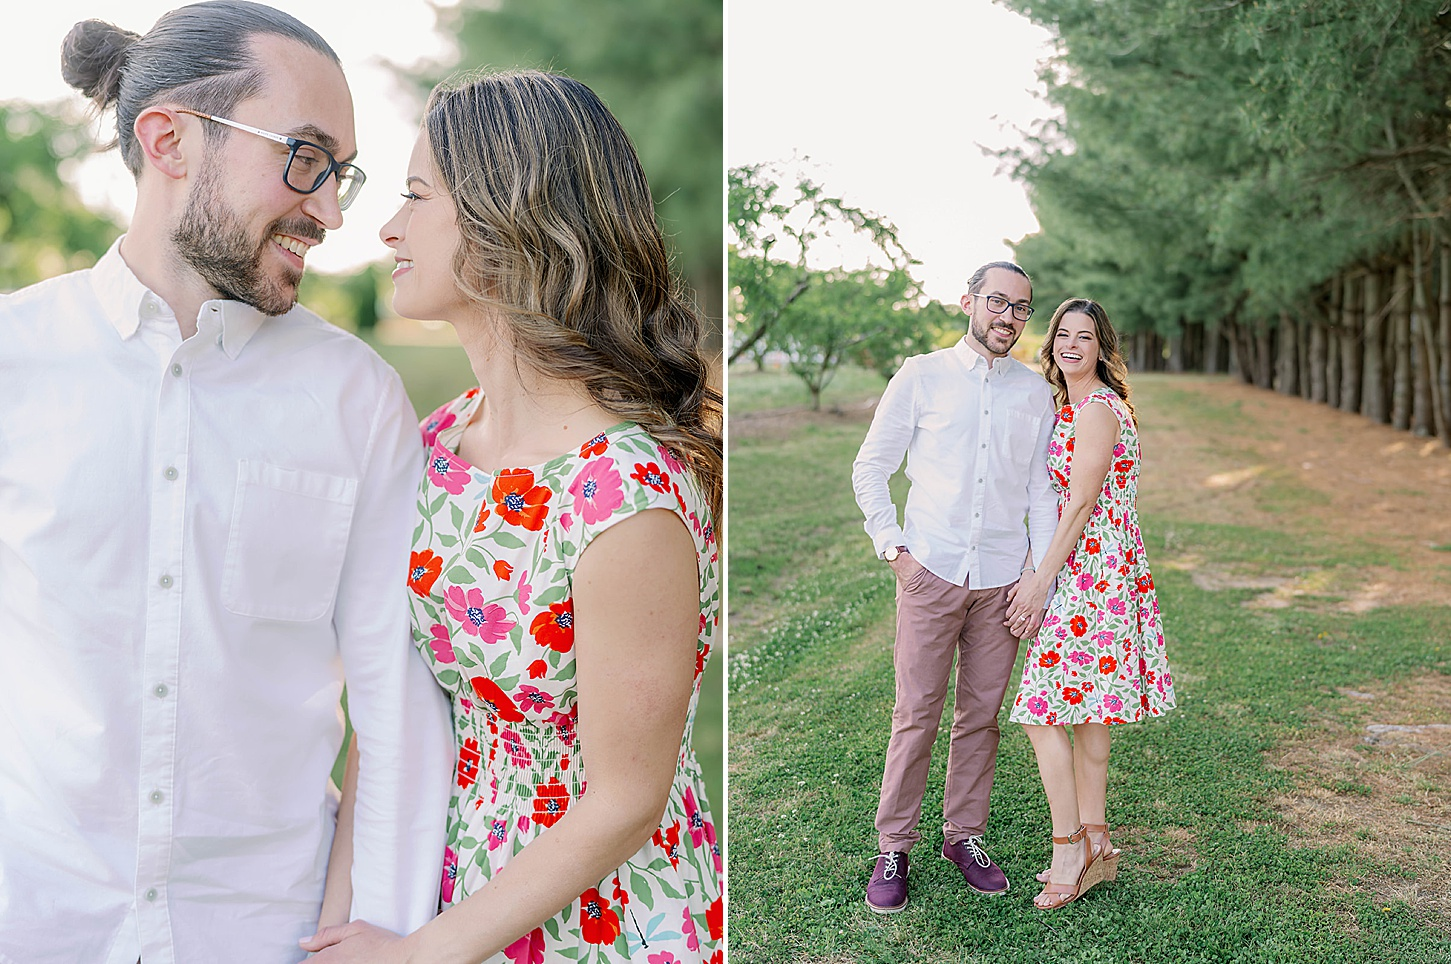 Bast Brothers Garden Center Mullica Hill NJ Engagement Photography by Magdalena Studios 0007